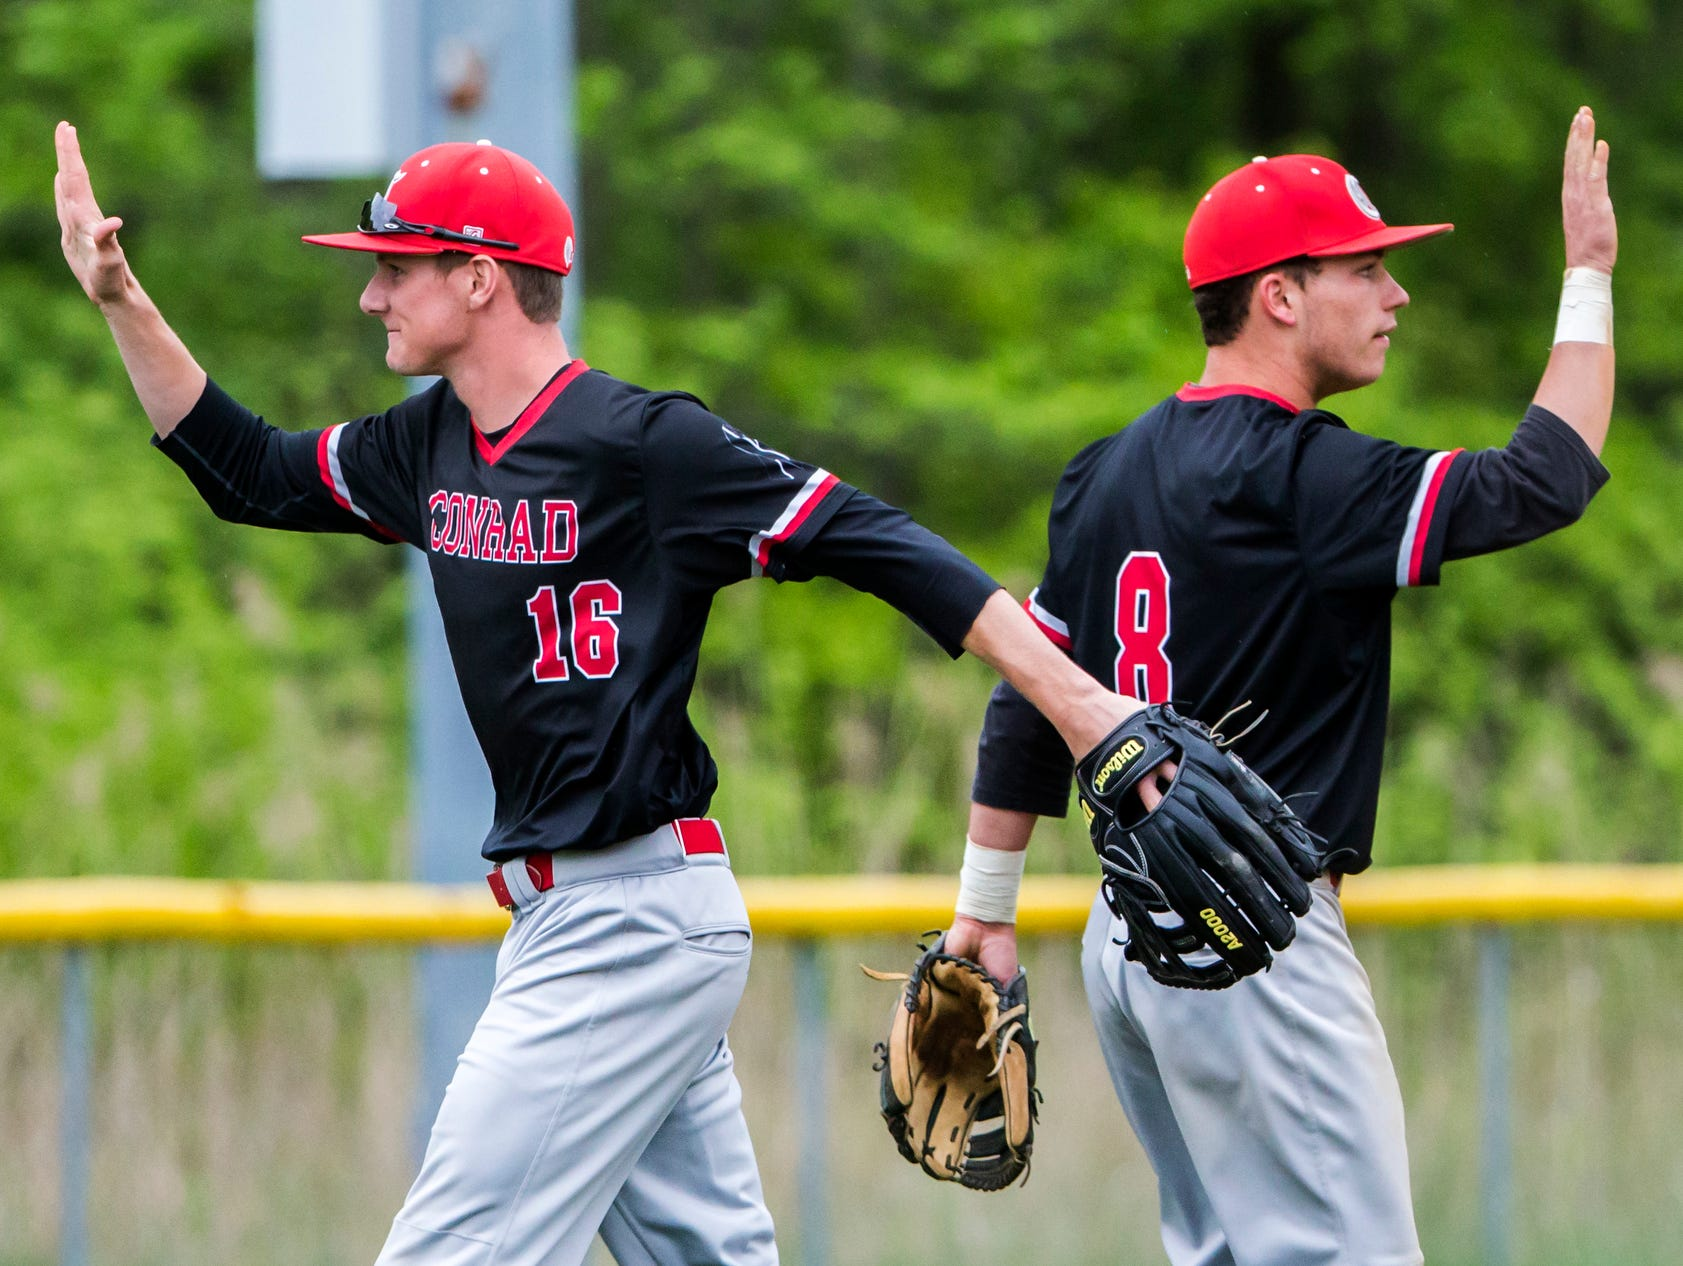 Conrad's Christopher Kramedas (left) and Brett Nowell (right) walk past each other as they high-five teammates following Conrad's 1-0 win over Delaware Military Academy in Newark on Tuesday afternoon.